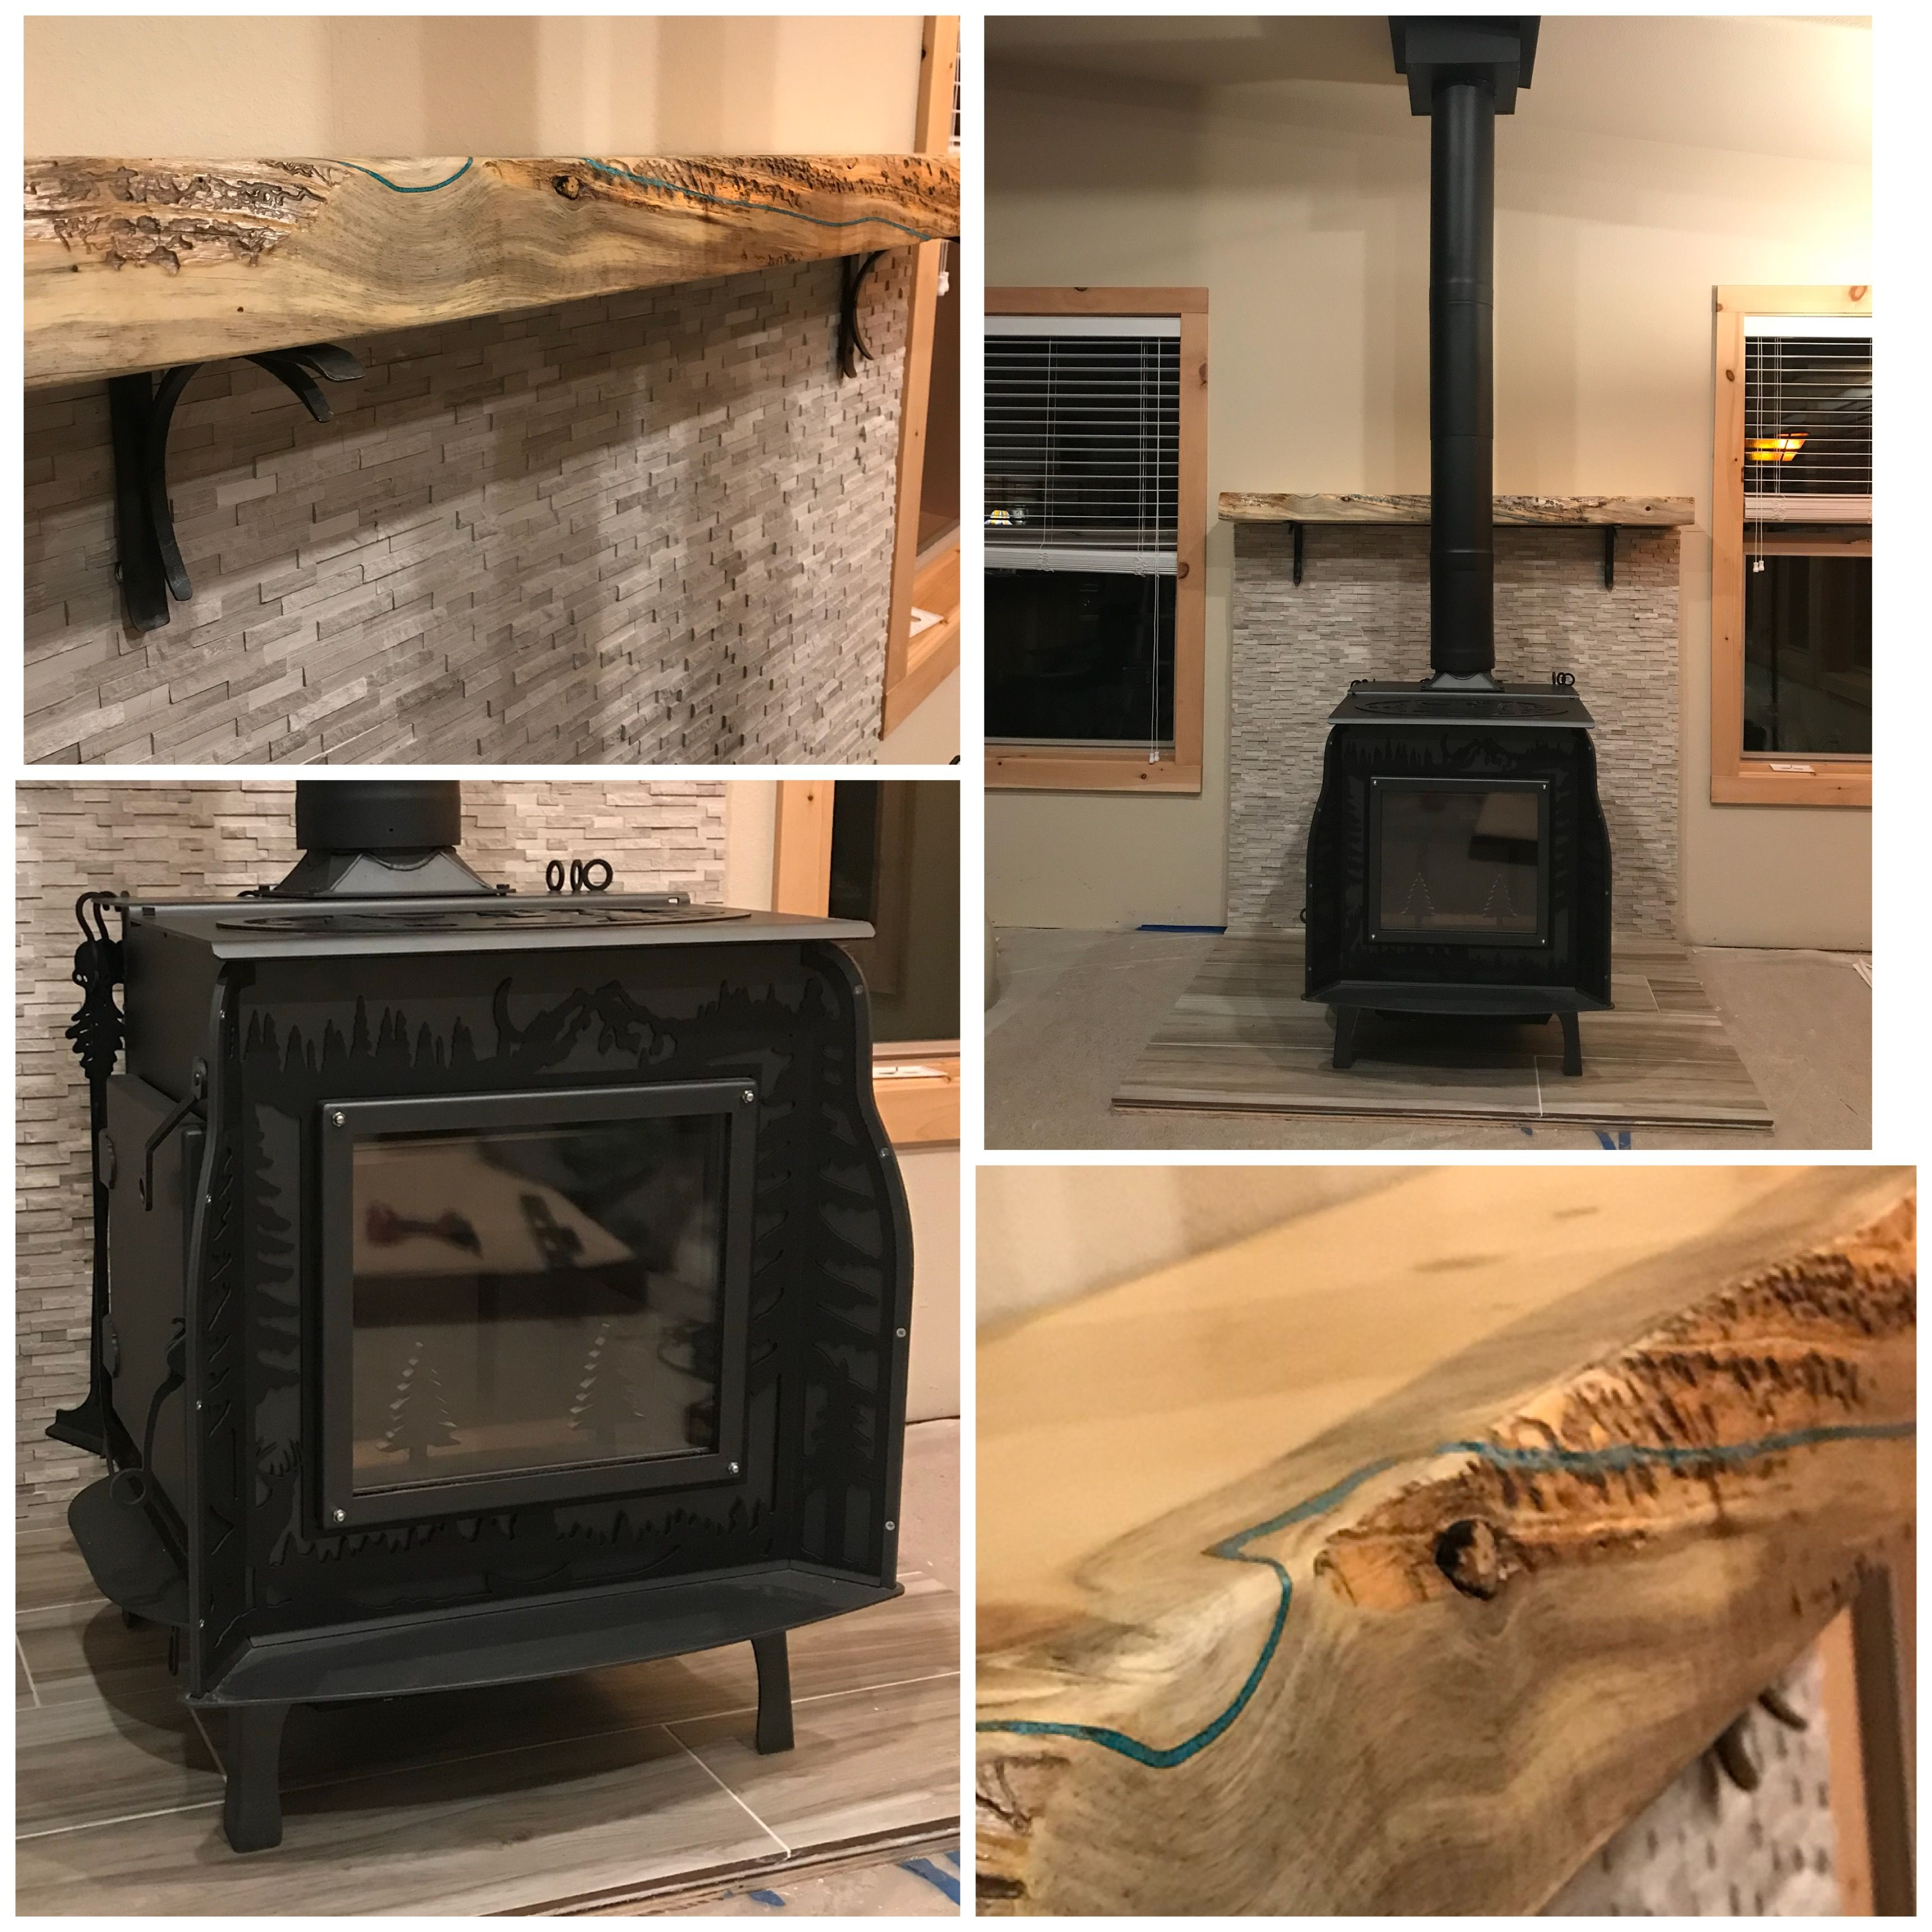 Diy Wood Stove Surround Heat Shield With Live Edge Turquoise Inlay Mantle Woodstock Soapstone Compa Soapstone Wood Stove Corner Wood Stove Wood Stove Surround